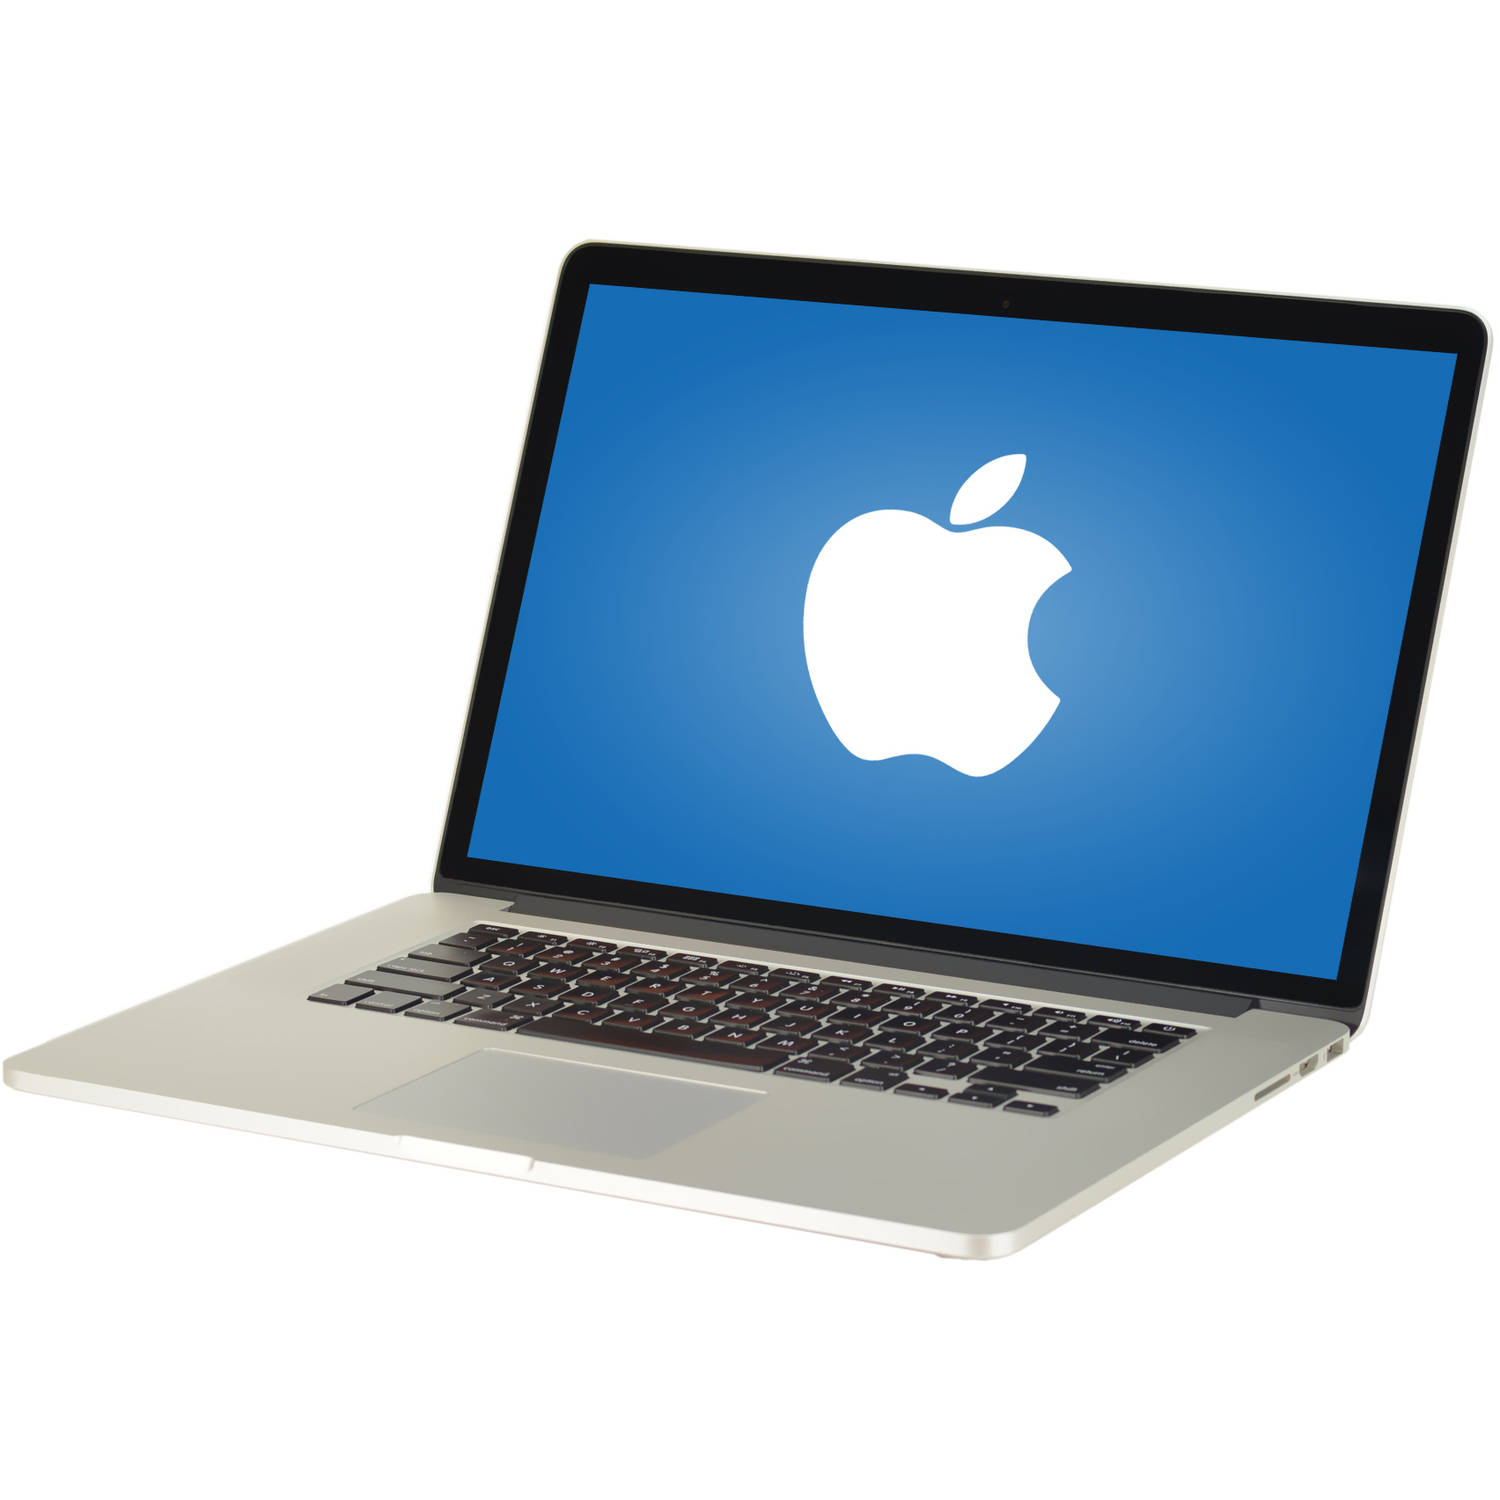 "Refurbished Apple A1398 MC975LL/A 15.4"" MacBook Pro, Mac OS X 10.11 El Capitan, Intel Core i7-3615QM Processor, 16GB RAM, 256GB Solid State Drive"